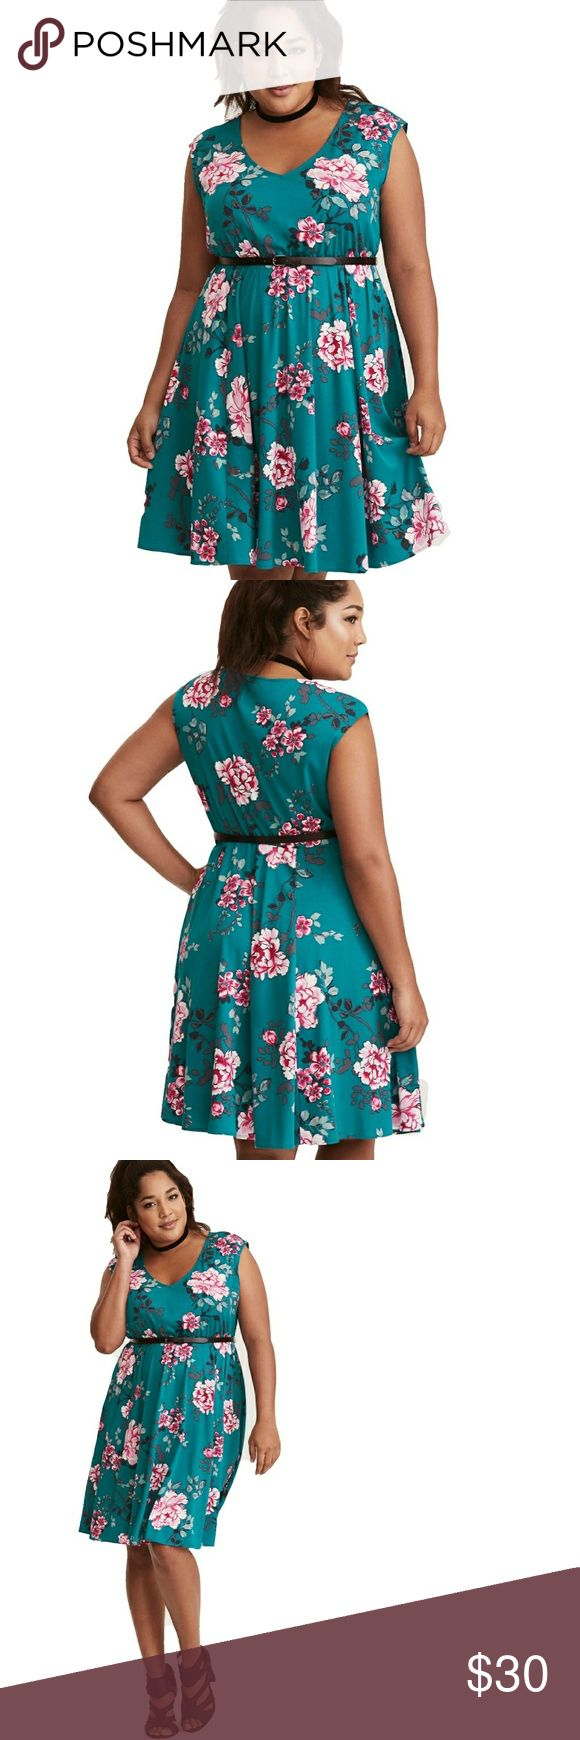 """Torrid Turquoise Floral Print Challis Skater Dress For when you want an """"I feel pretty"""" moment, slip into this dress. The fabric is lightweight and silky, the stretch waistband is forgiving, and the removable belt adds an element of dressed-up sophistication.  Challis fabric V-neck Short sleeves Stretch waist  Brand new with tags and belt! Torrid size 2. torrid Dresses"""